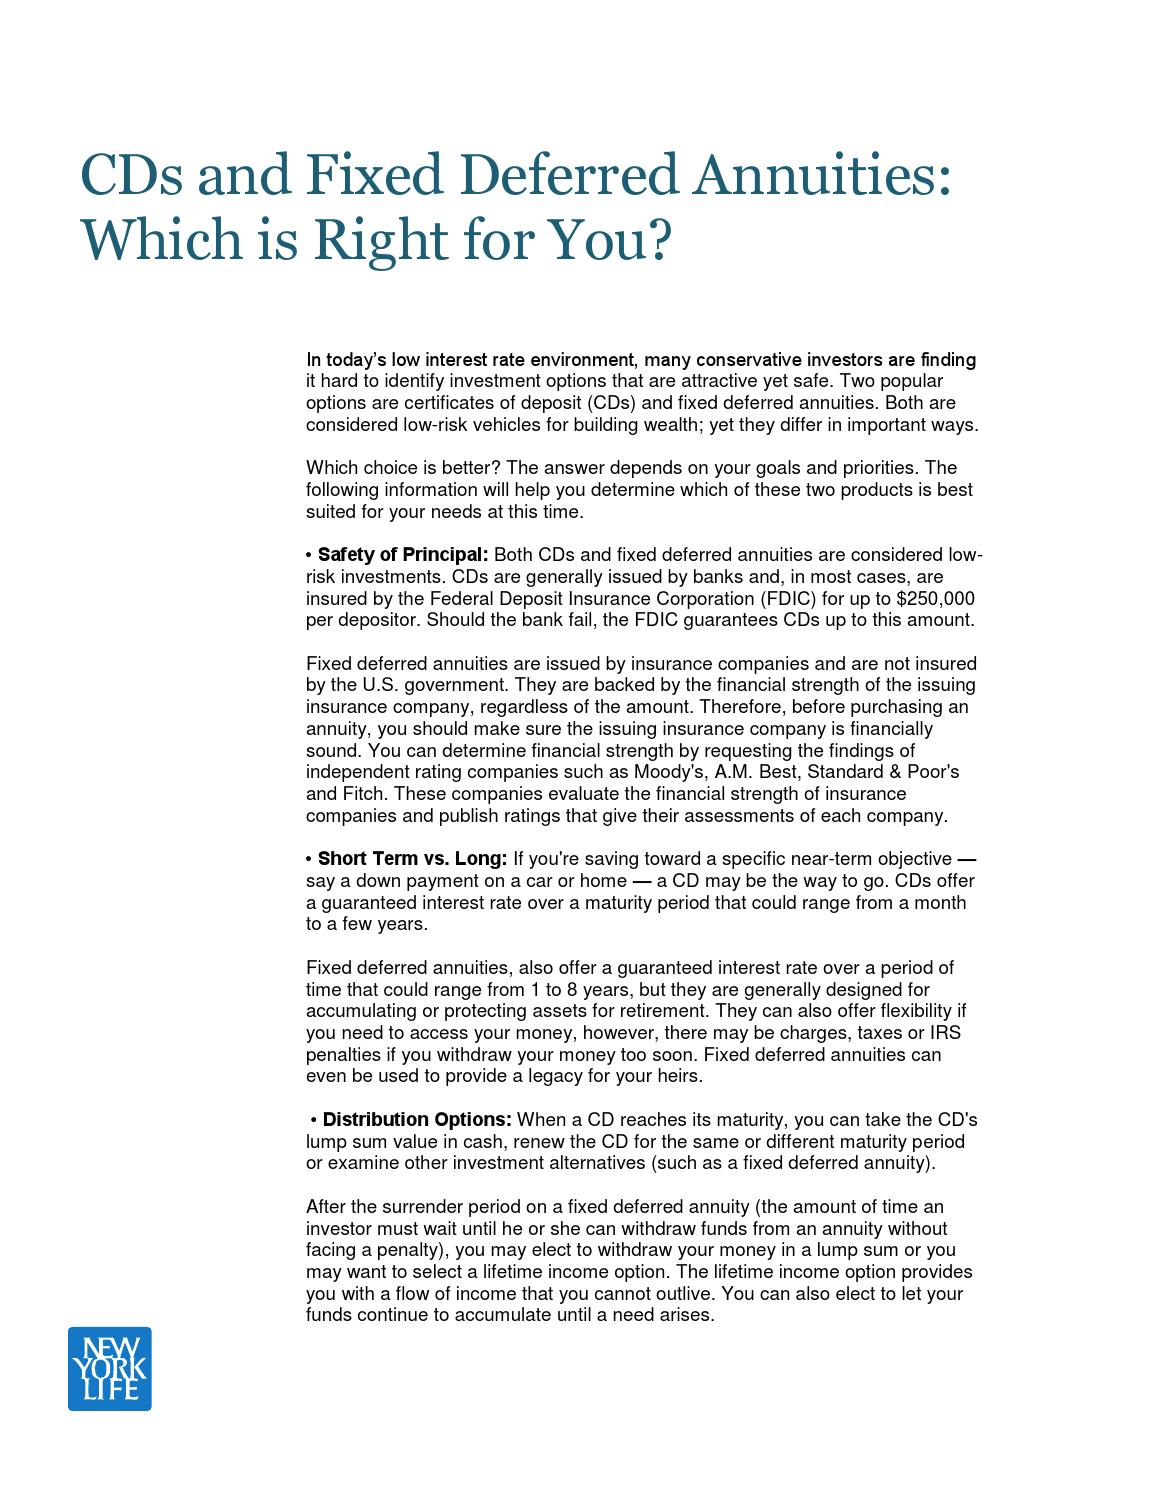 Cds And Fixed Deferred Annuities Which Is Right For You By